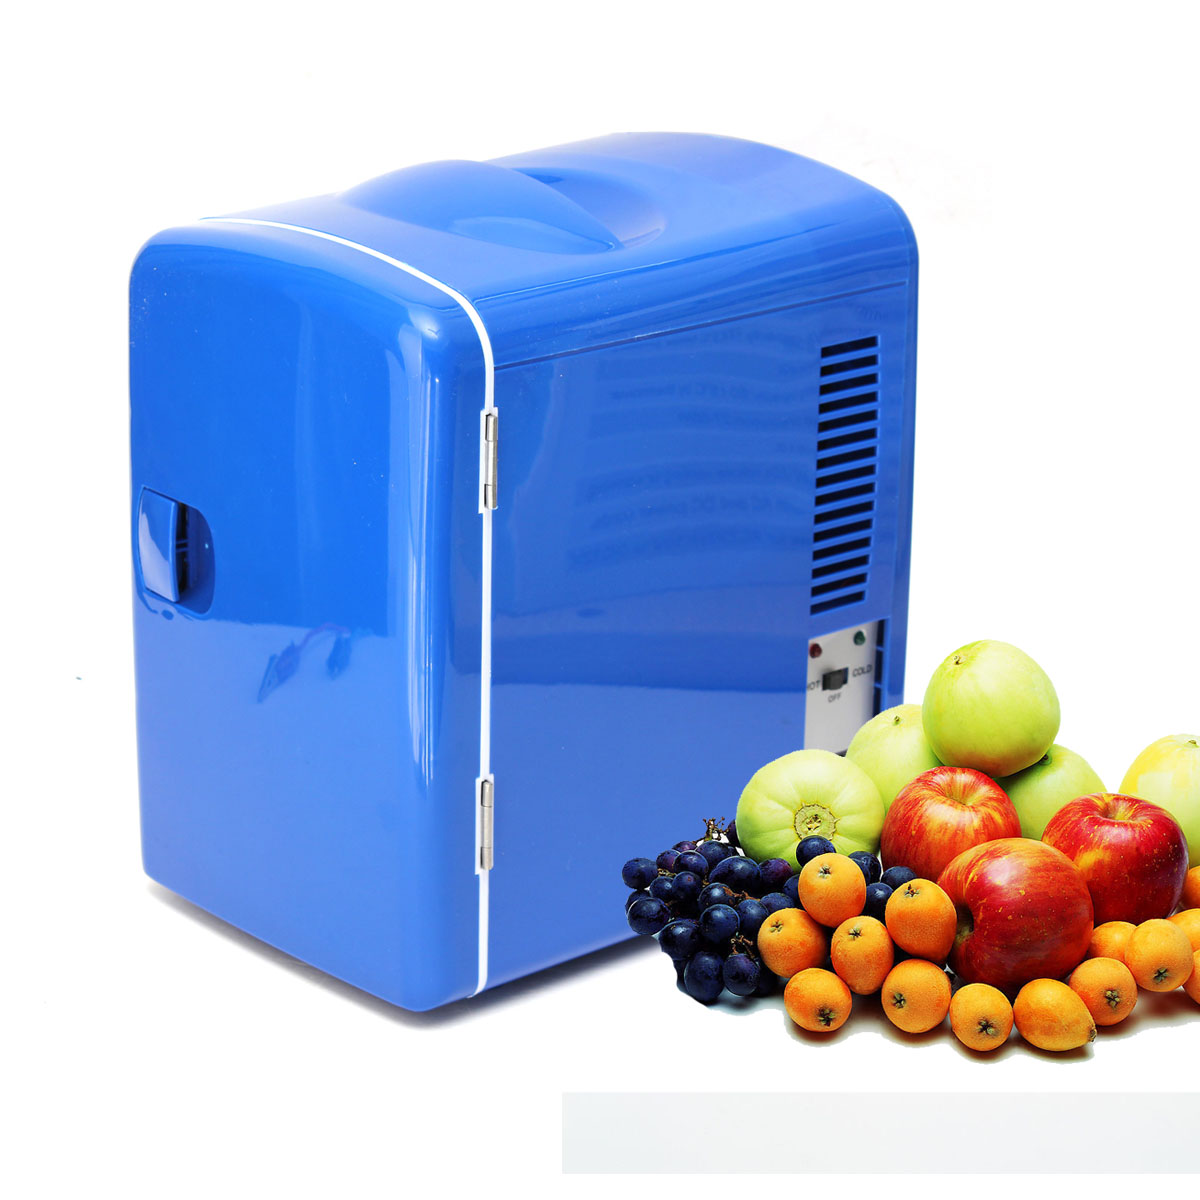 New 12V 4L Blue Car Auto Van Boat Mini Beer/Drink/Travel/Home Wine Cooler Warmer Refrigerator CAMPING Fridge Low-noise(China (Mainland))